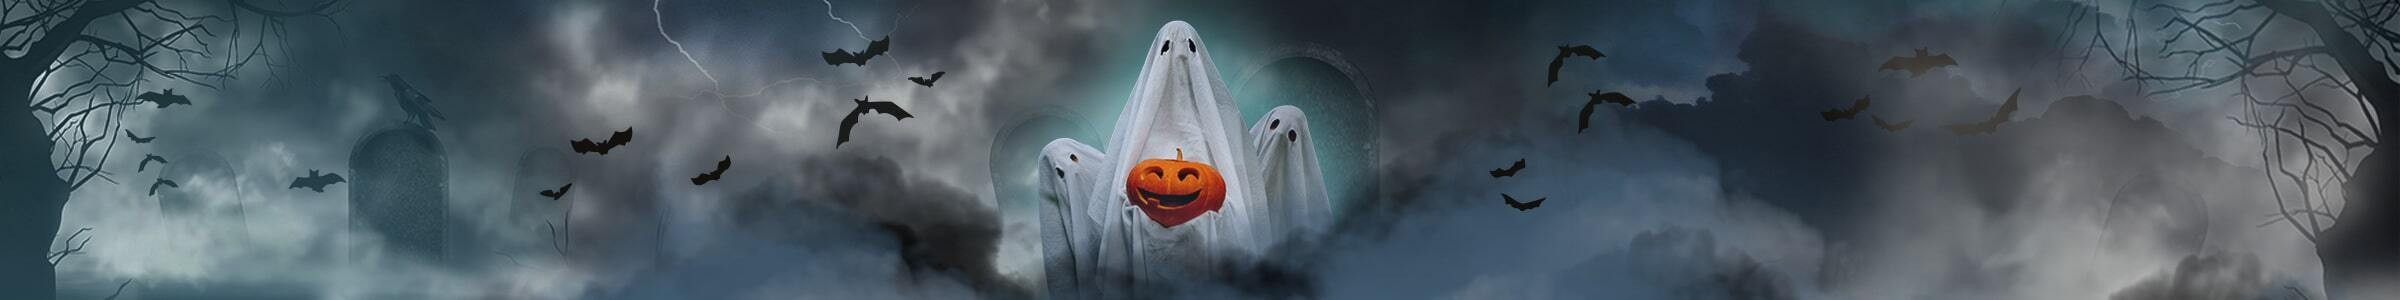 Category_Teaser_Header_Helloween_2400x300